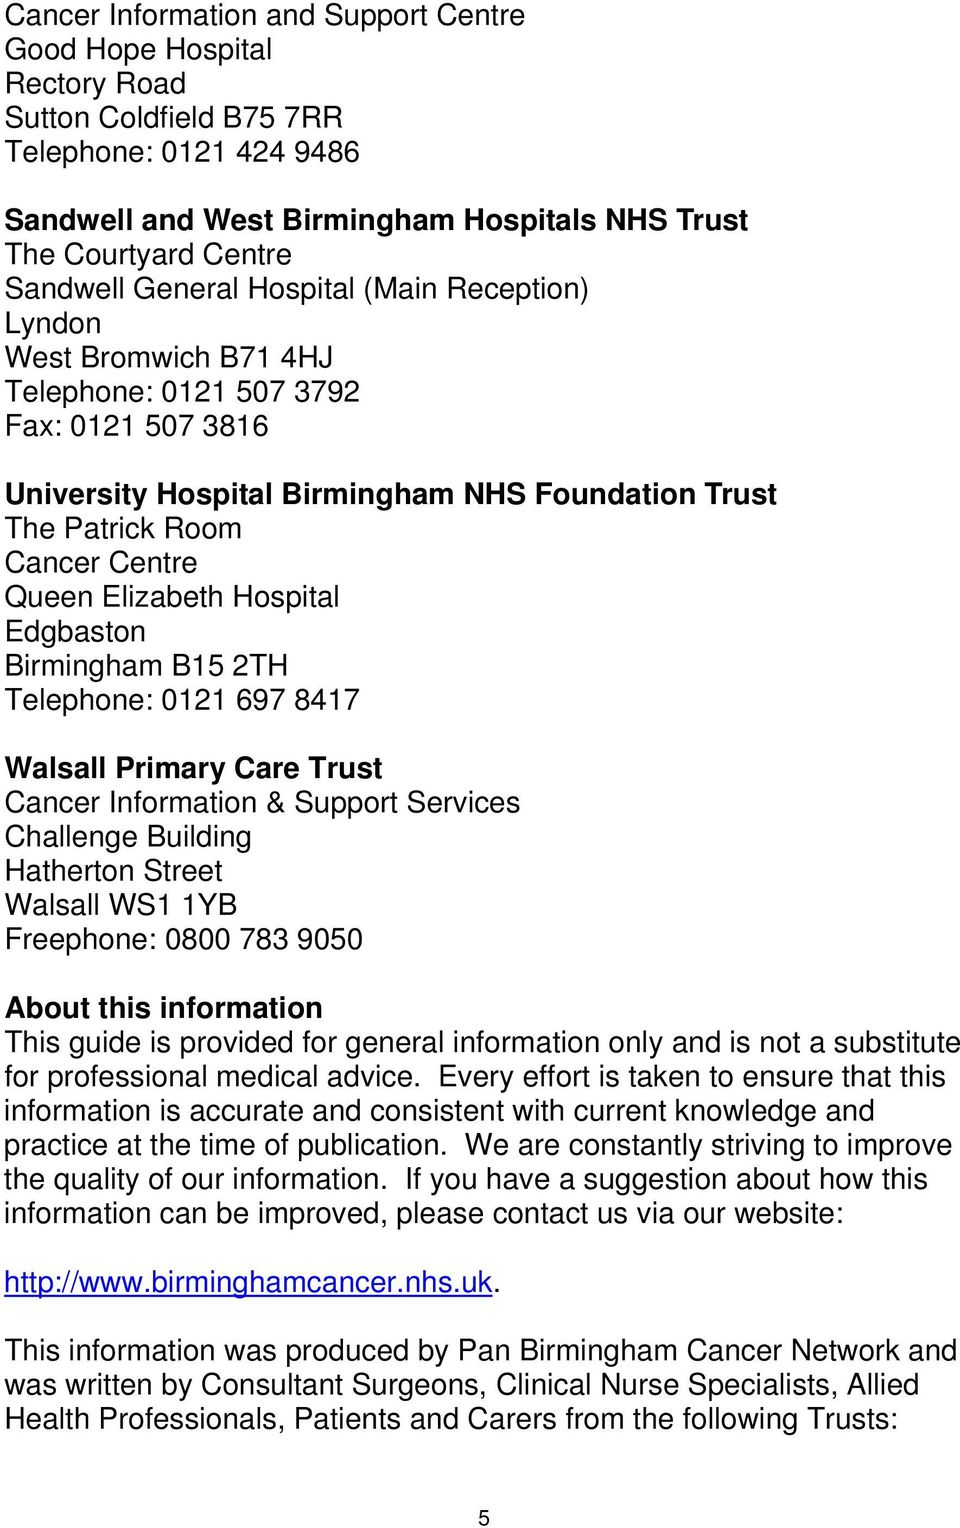 Elizabeth Hospital Edgbaston Birmingham B15 2TH Telephone: 0121 697 8417 Walsall Primary Care Trust Cancer Information & Support Services Challenge Building Hatherton Street Walsall WS1 1YB